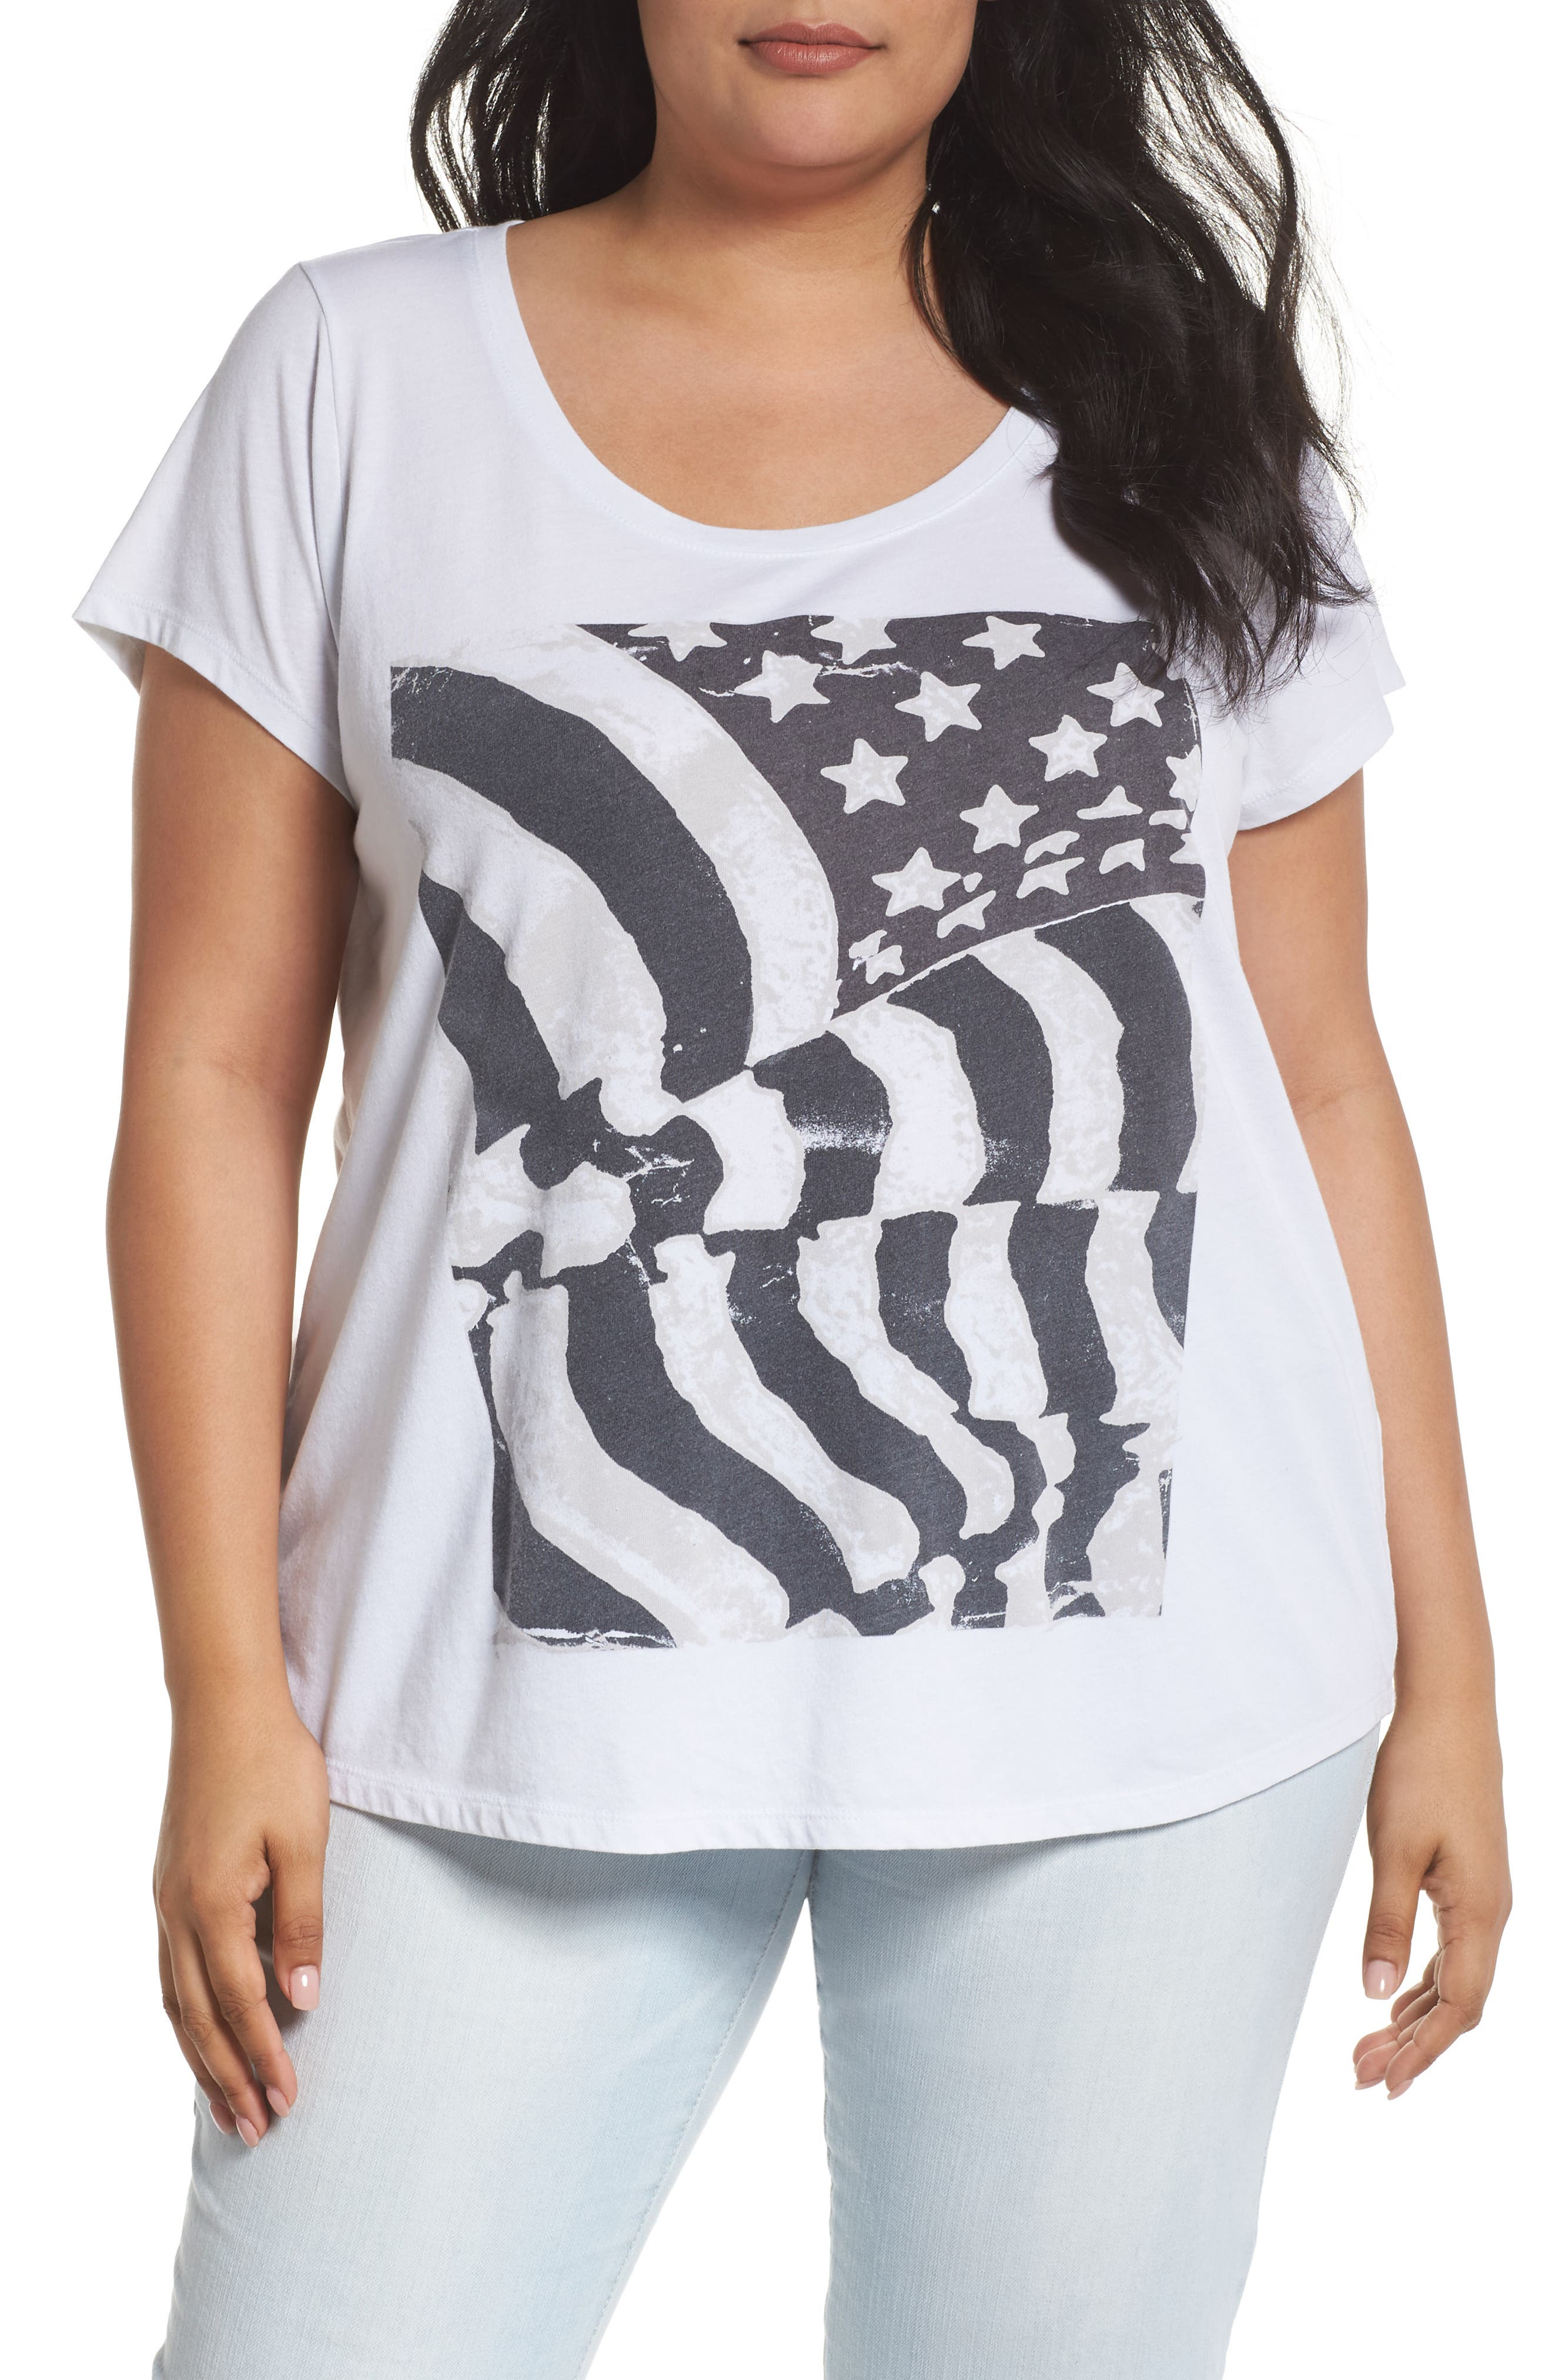 LUCKY BRAND,                             Flag Graphic Tee,                             Main thumbnail 1, color,                             002